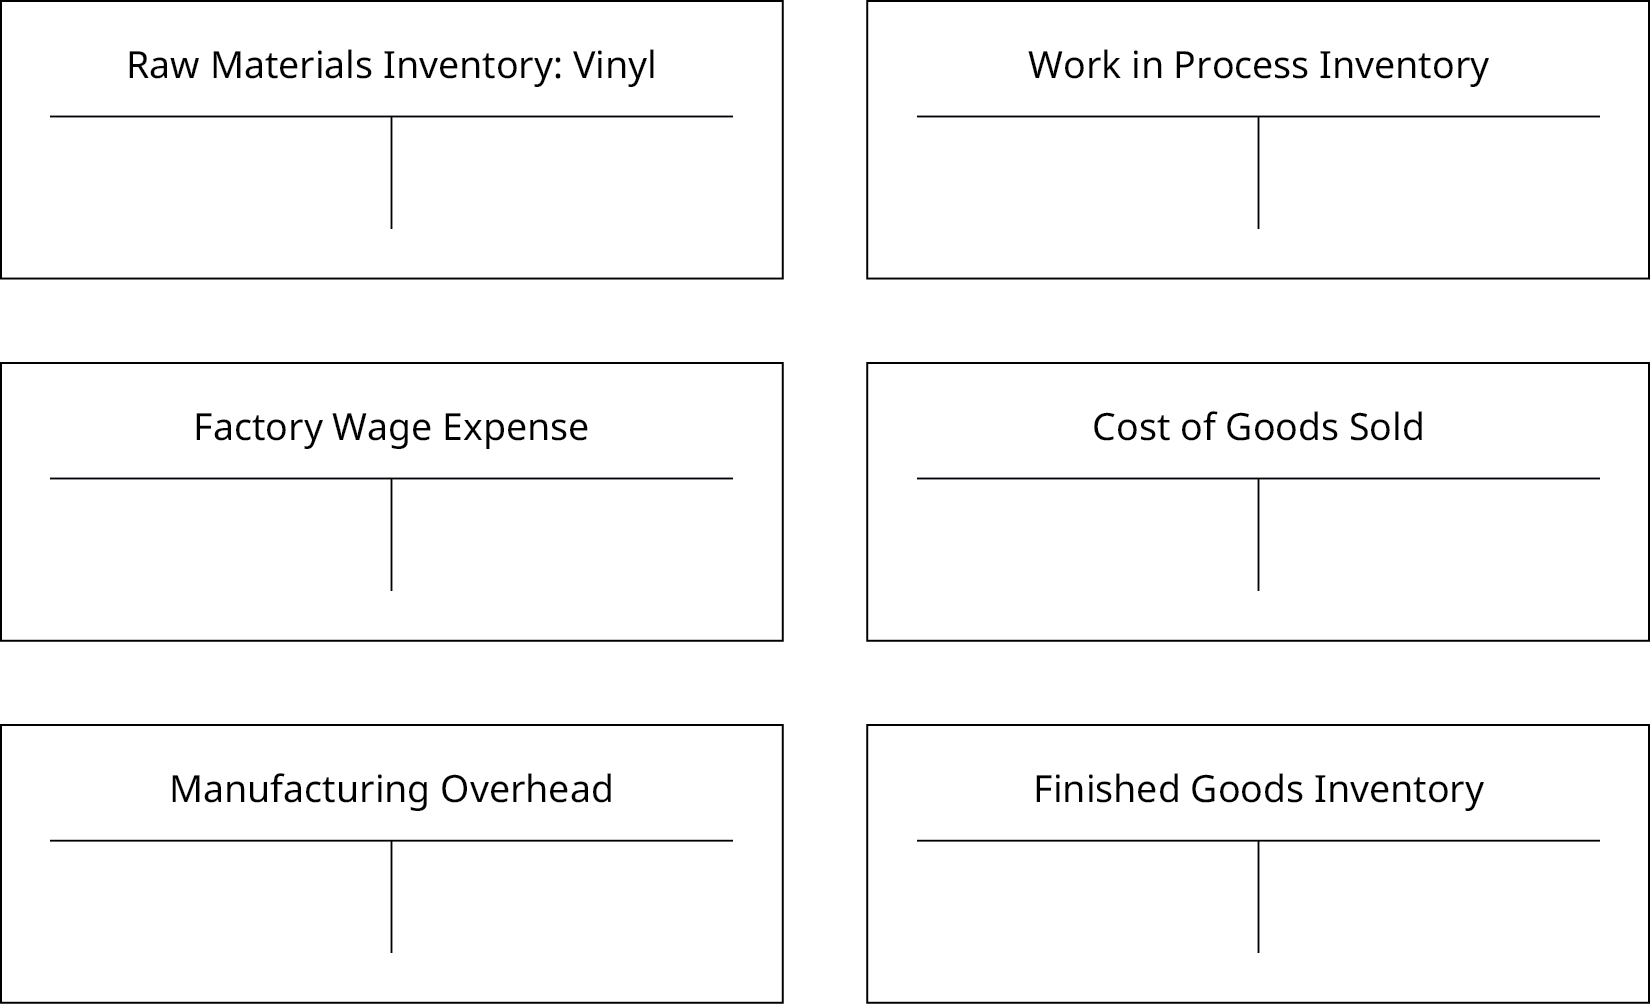 "There are six blank T-Accounts in this figure: one each for ""Raw Materials Inventory: Vinyl"", ""Factory Wage Expense"", ""Manufacturing Overhead"", ""Work in Process Inventory"", ""Cost of Goods Sold"", and ""Finished Goods Inventory."""